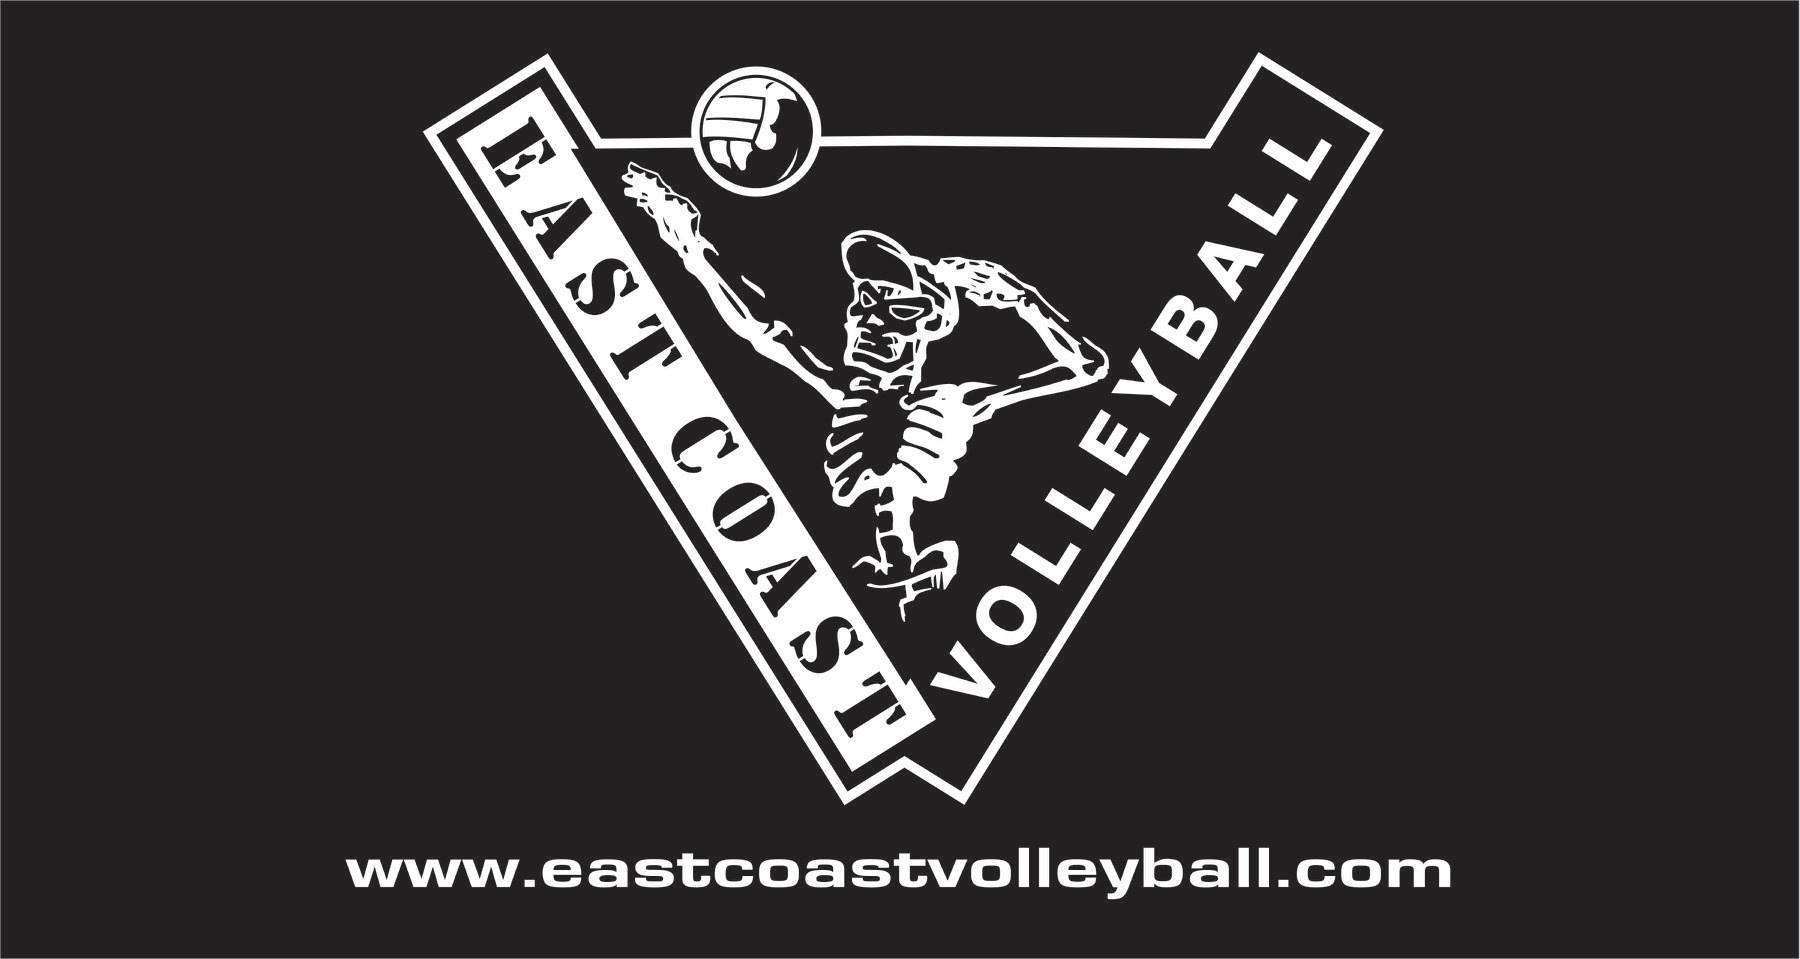 East Coast Volleyball